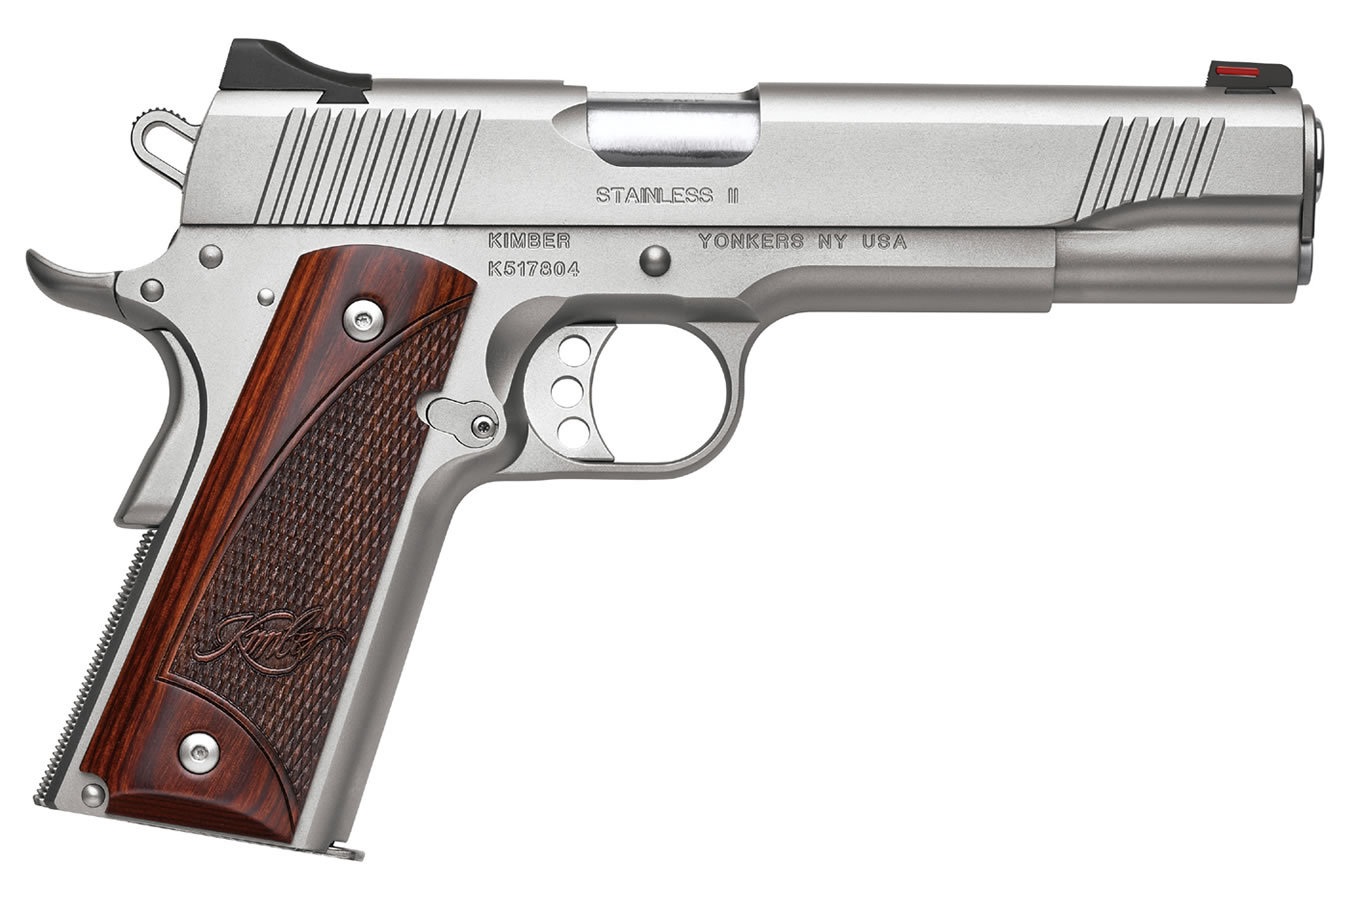 Kimber Stainless Luger Vance Outdoors